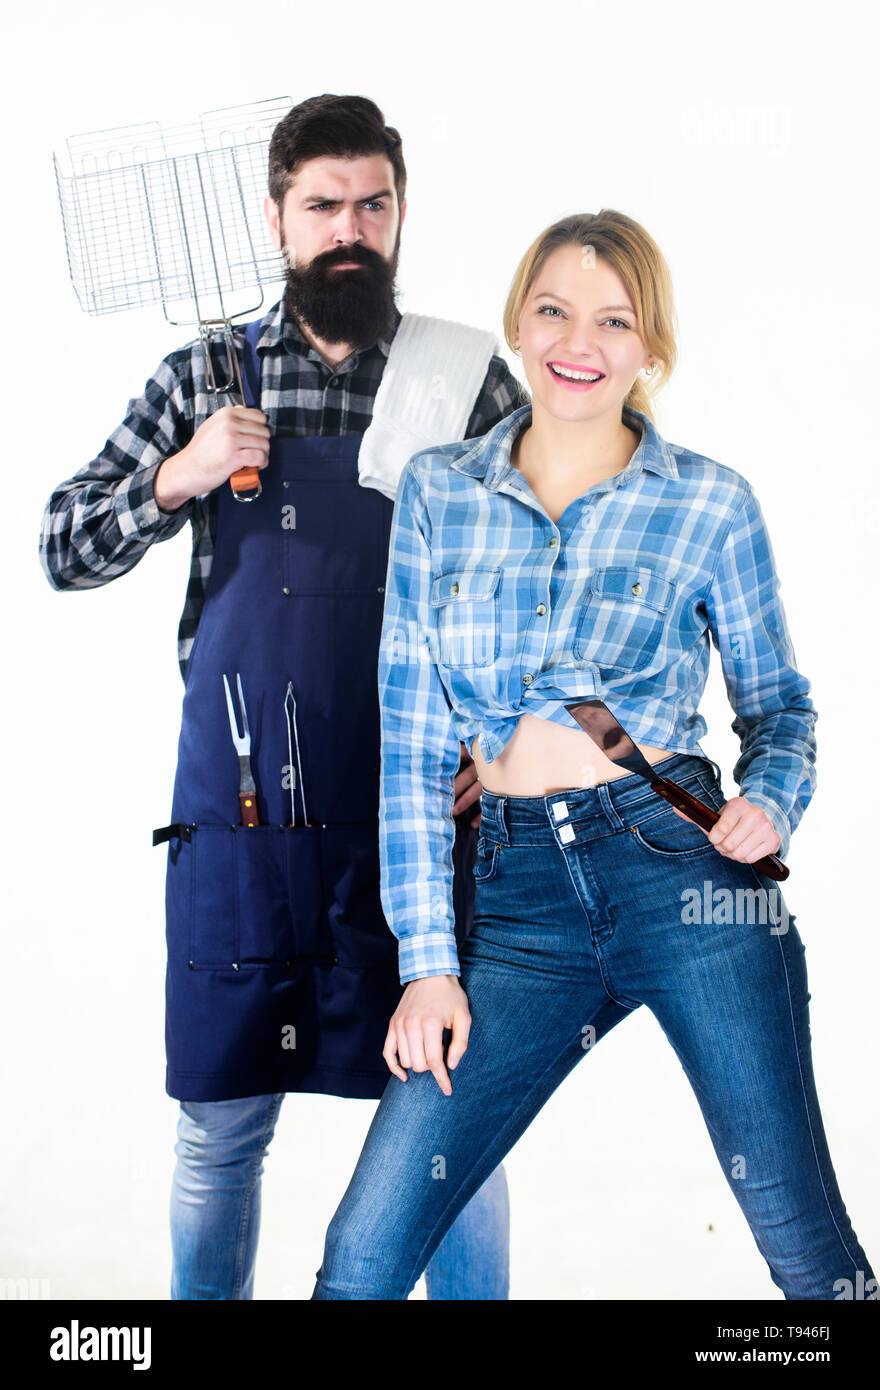 Family weekend. Sharing good time. Picnic barbecue. food cooking recipe. Tools for roasting meat. Couple in love hold kitchen utensils. Man bearded hipster and girl. Preparation and culinary. - Stock Image